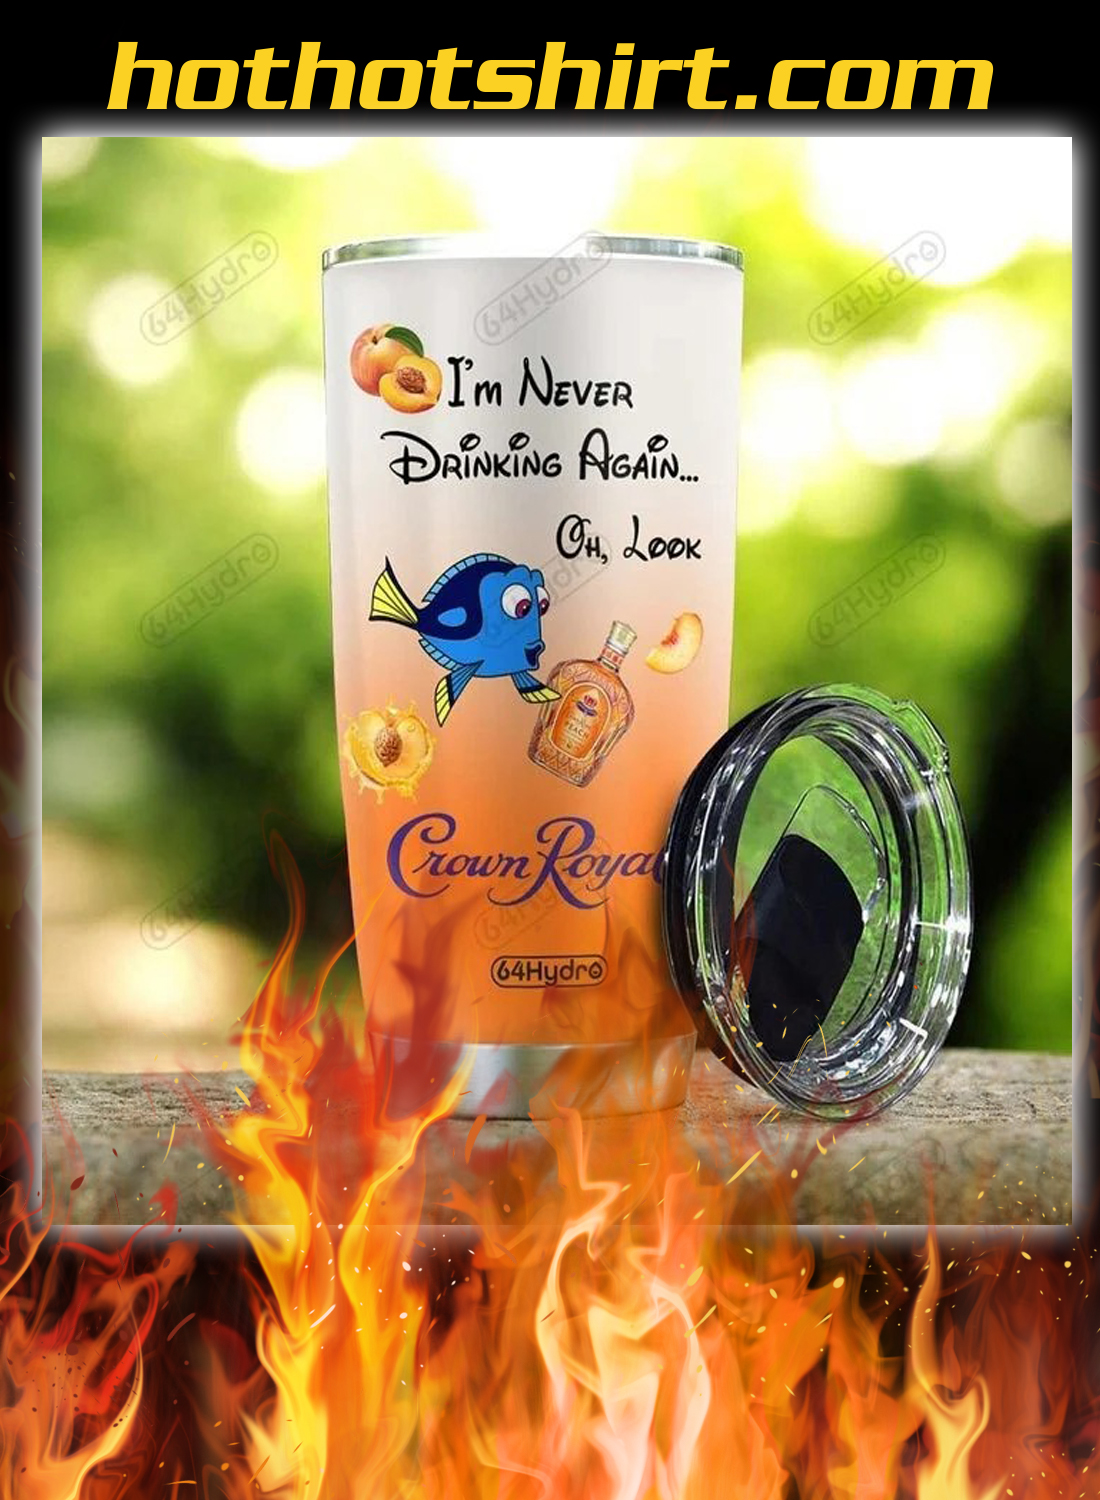 Personalized custom name dory i'm never drinking again crown royal tumbler 1